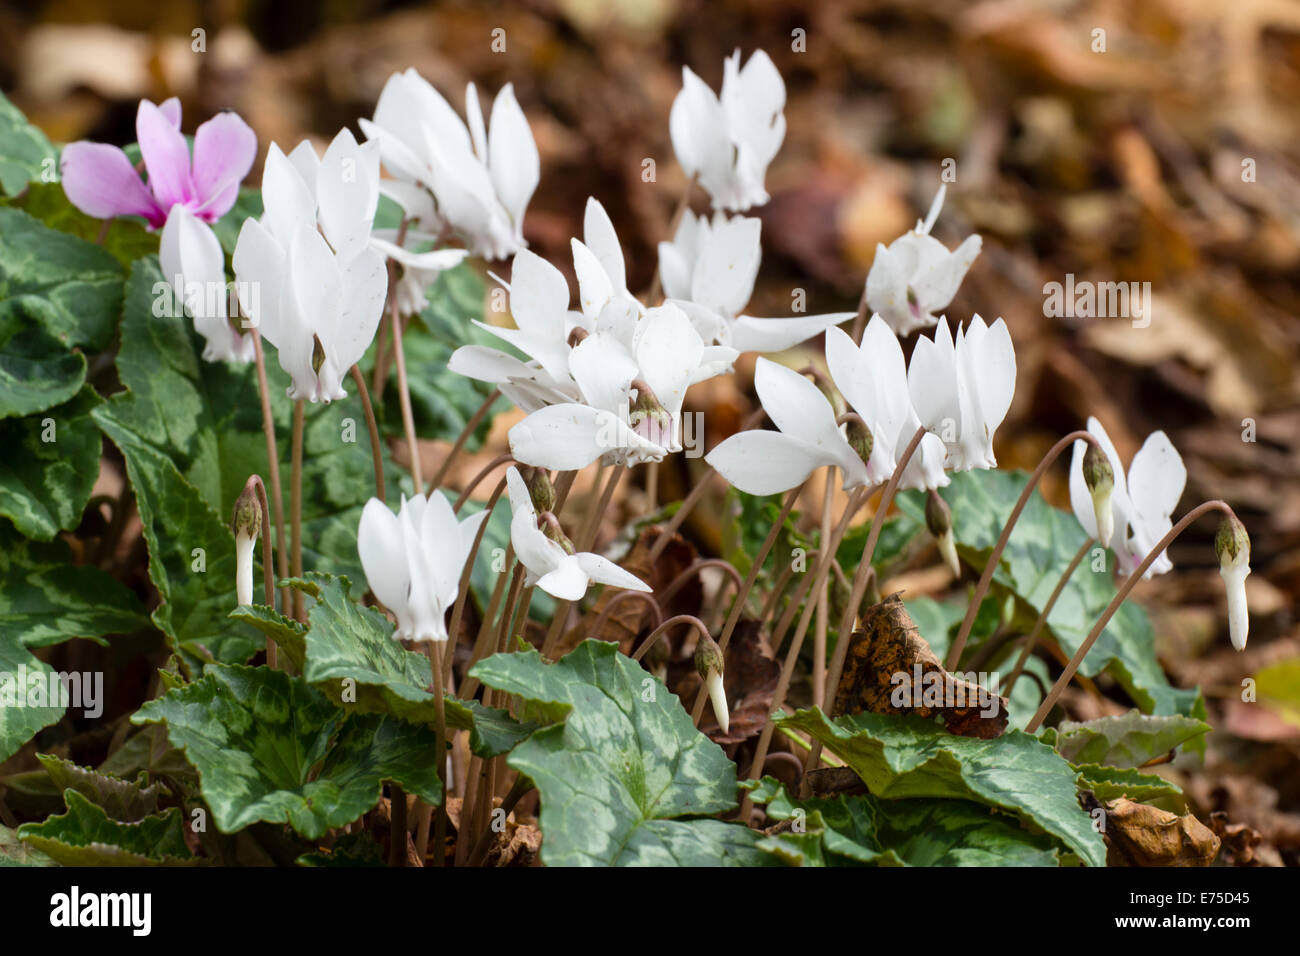 September flowers of the white form of sowbread, Cyclamen hederifolium album - Stock Image